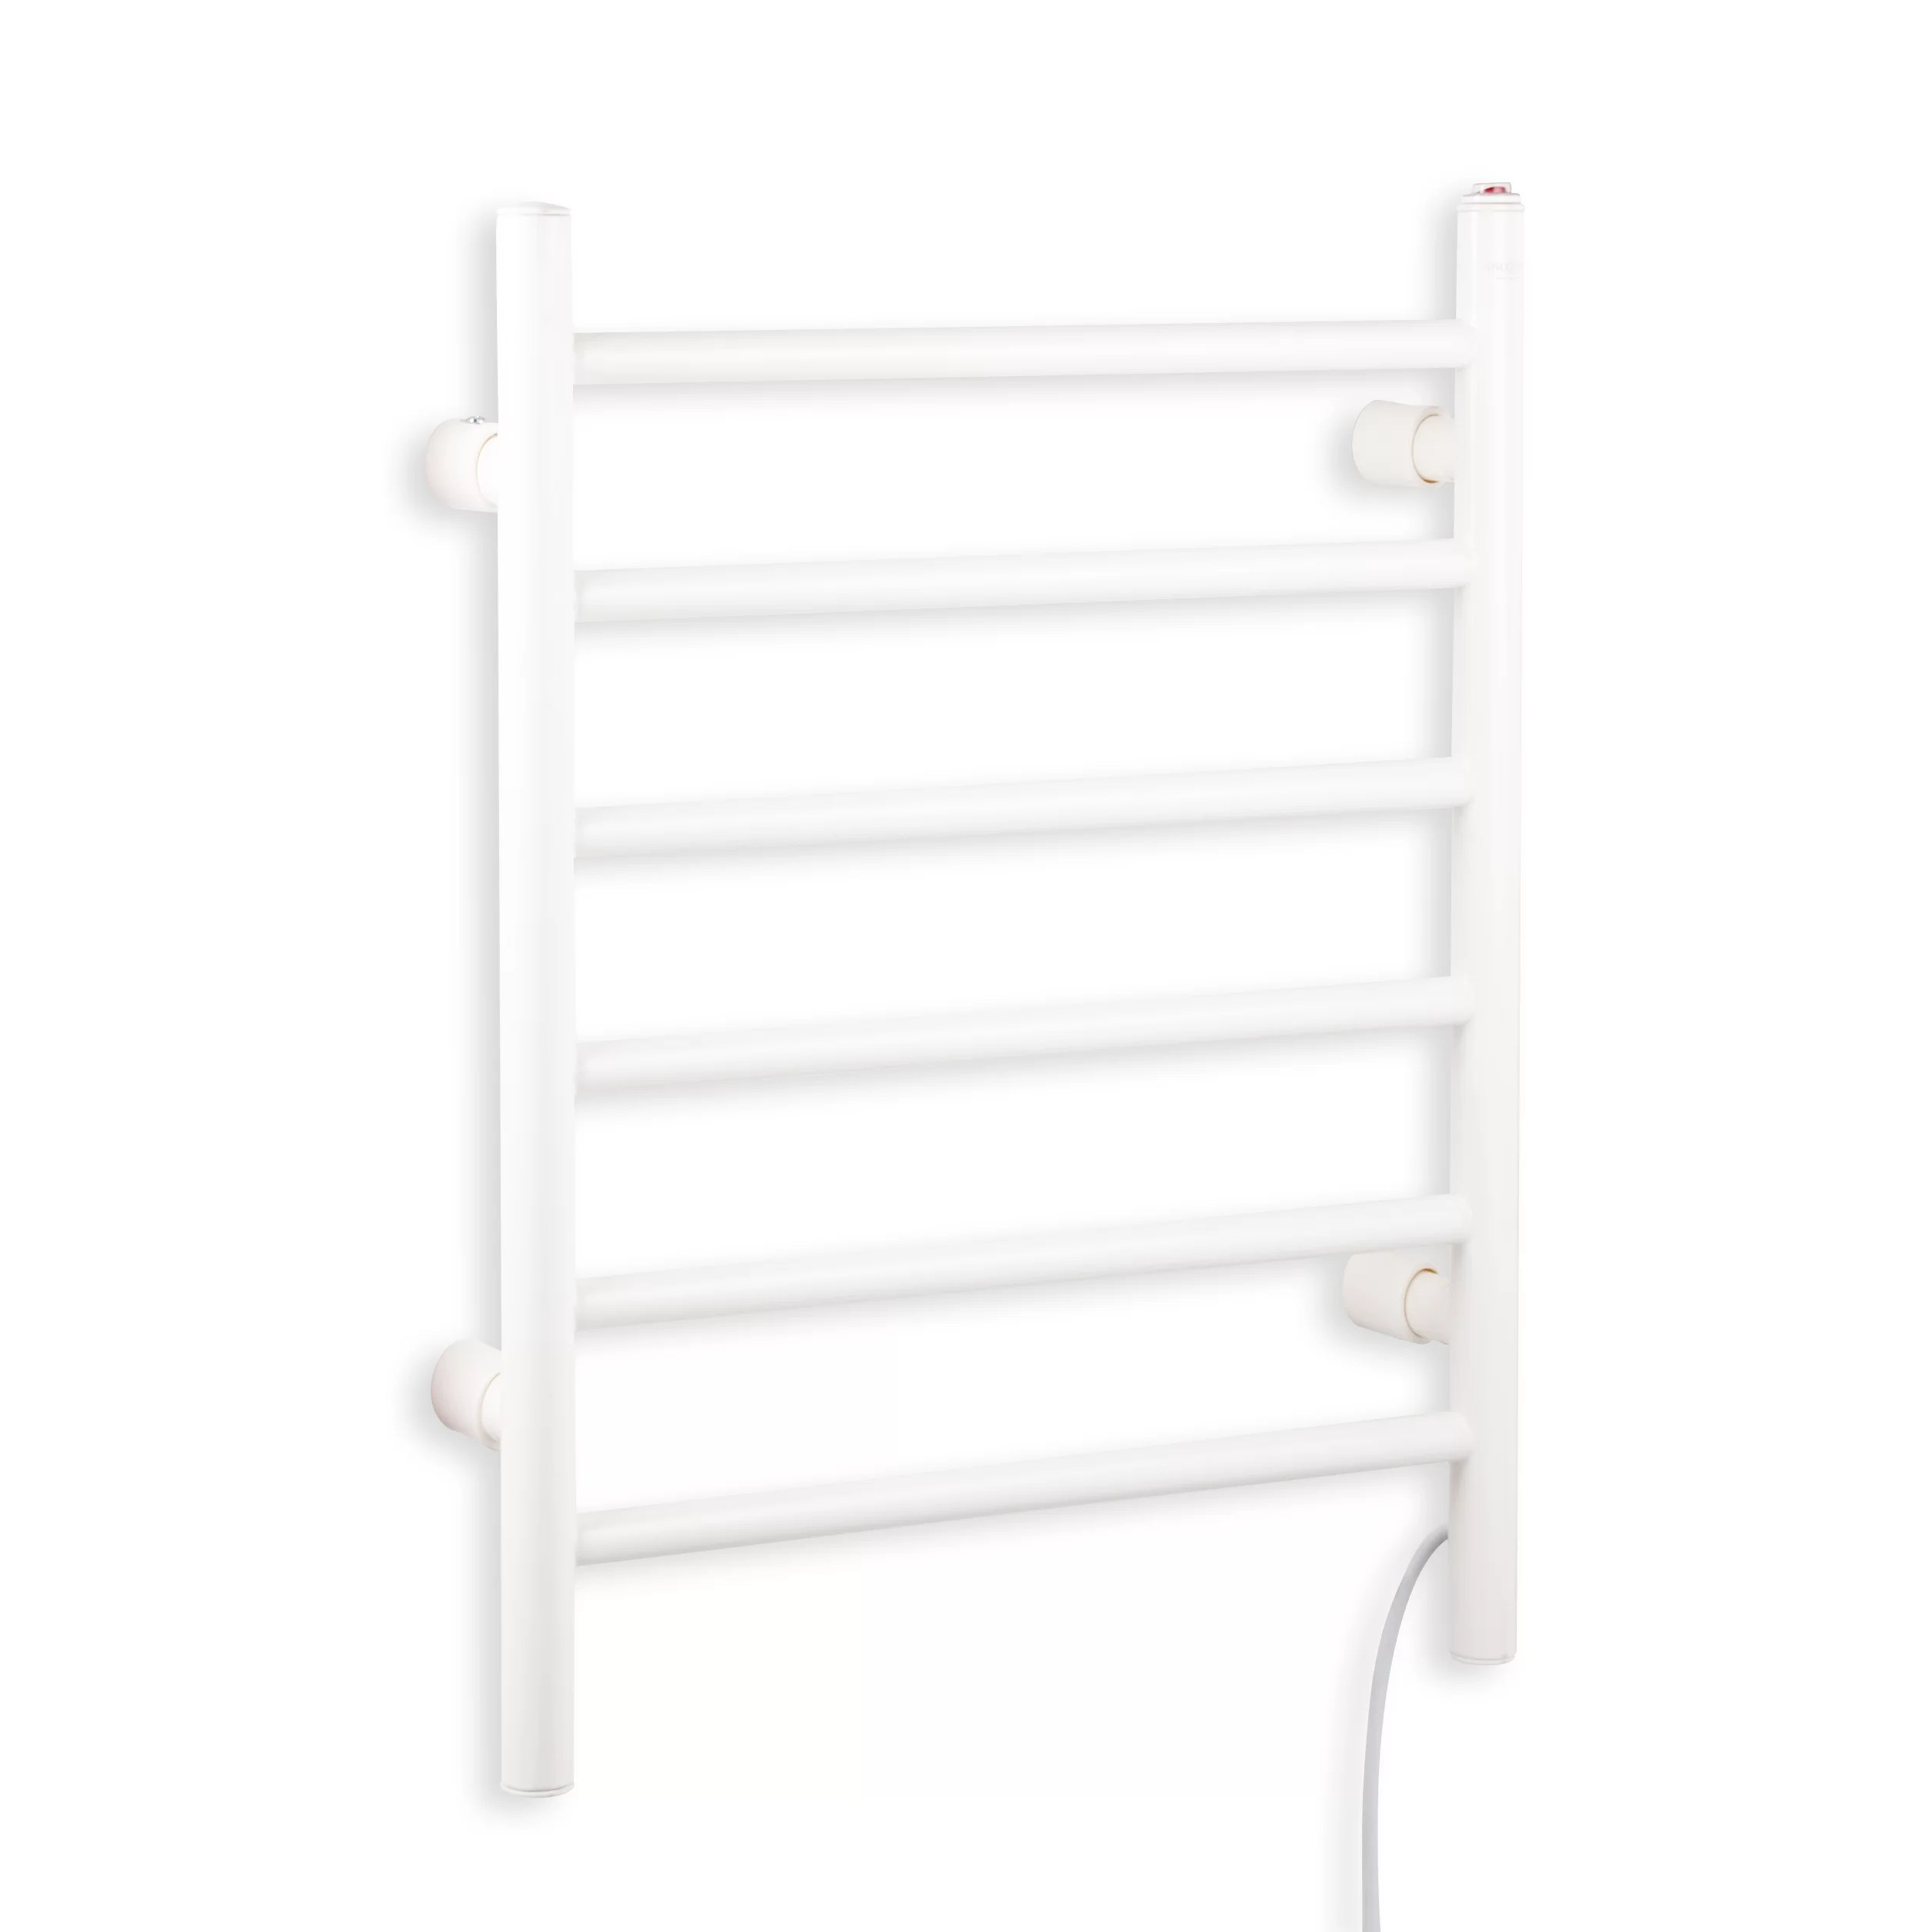 Comfort Wall Mounted Electric Towel Warmer